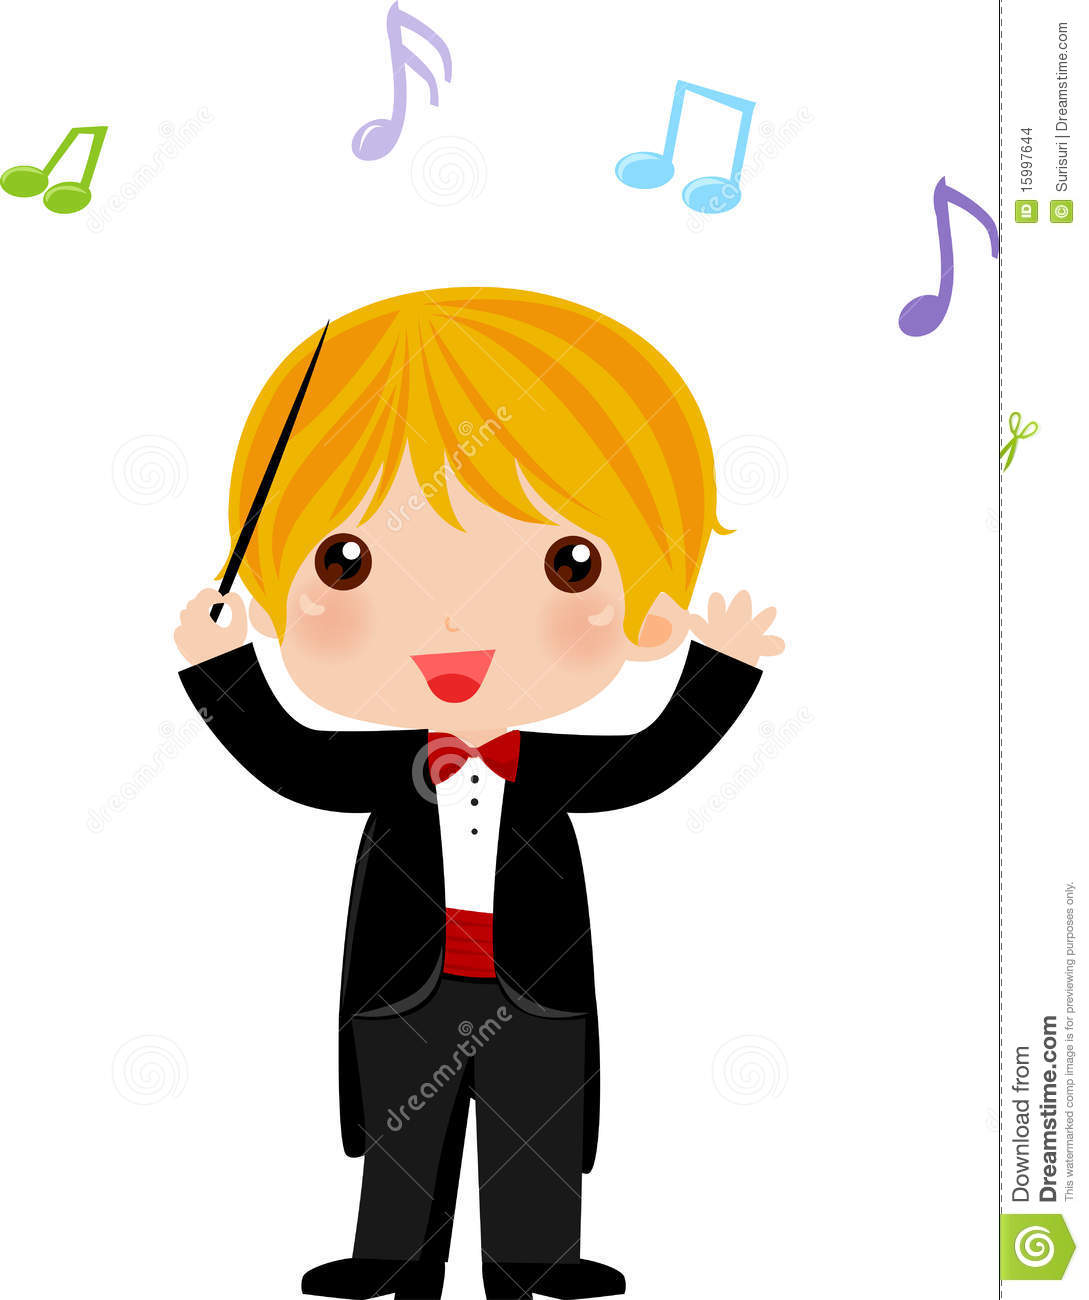 I Want To Be An Orchestra Conductor When I Grow Up Stock